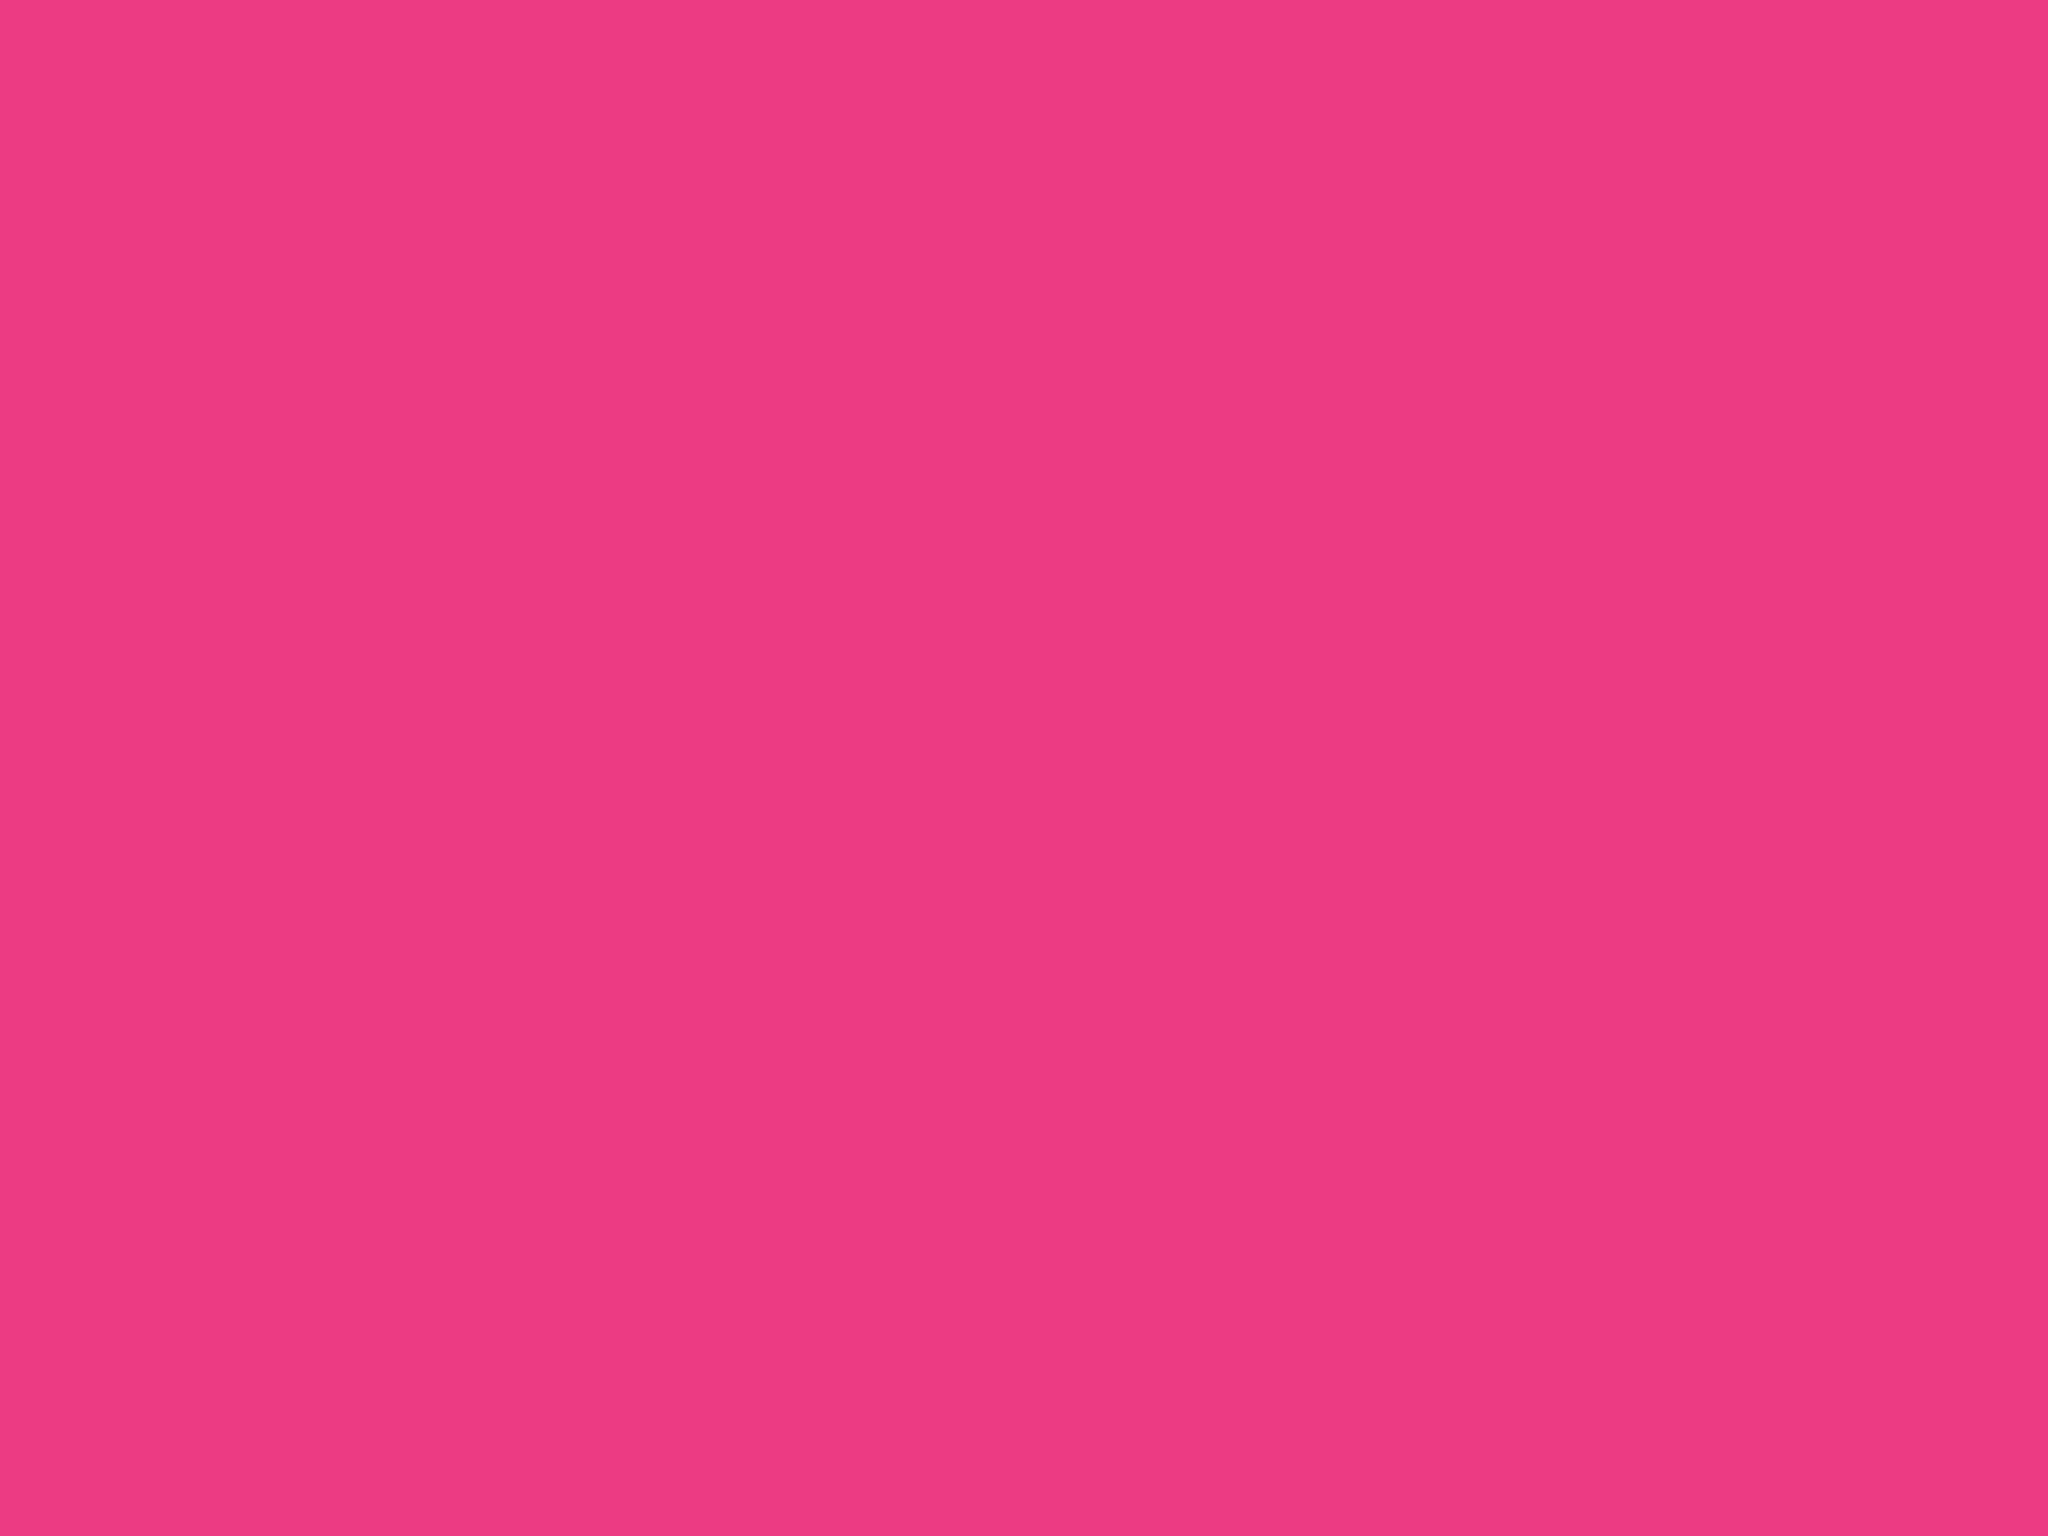 2048x1536 Cerise Pink Solid Color Background